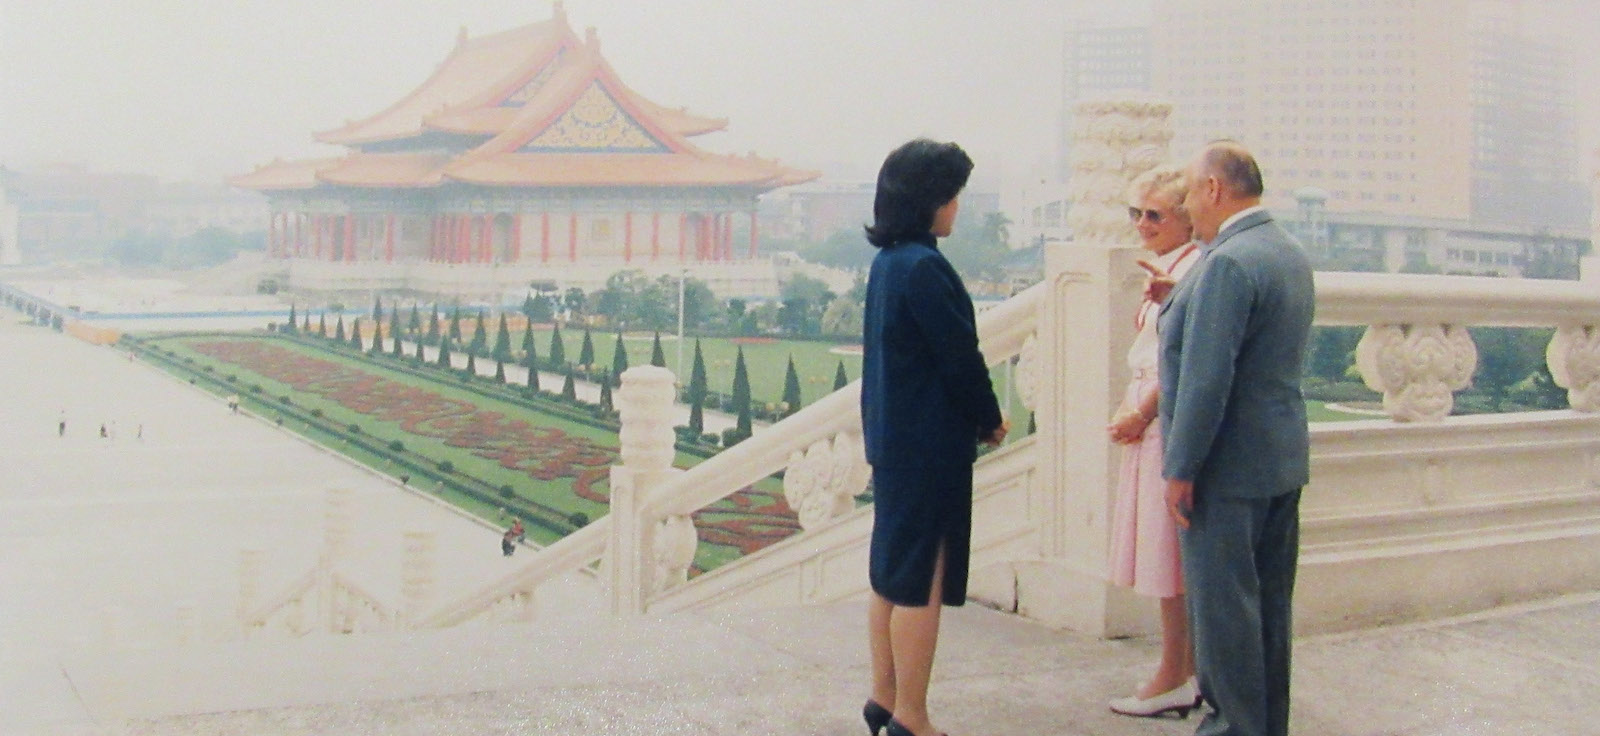 Former New Zealand prime minister Robert Muldoon visit to China in May 1987 (Photo: Archives New Zealand)